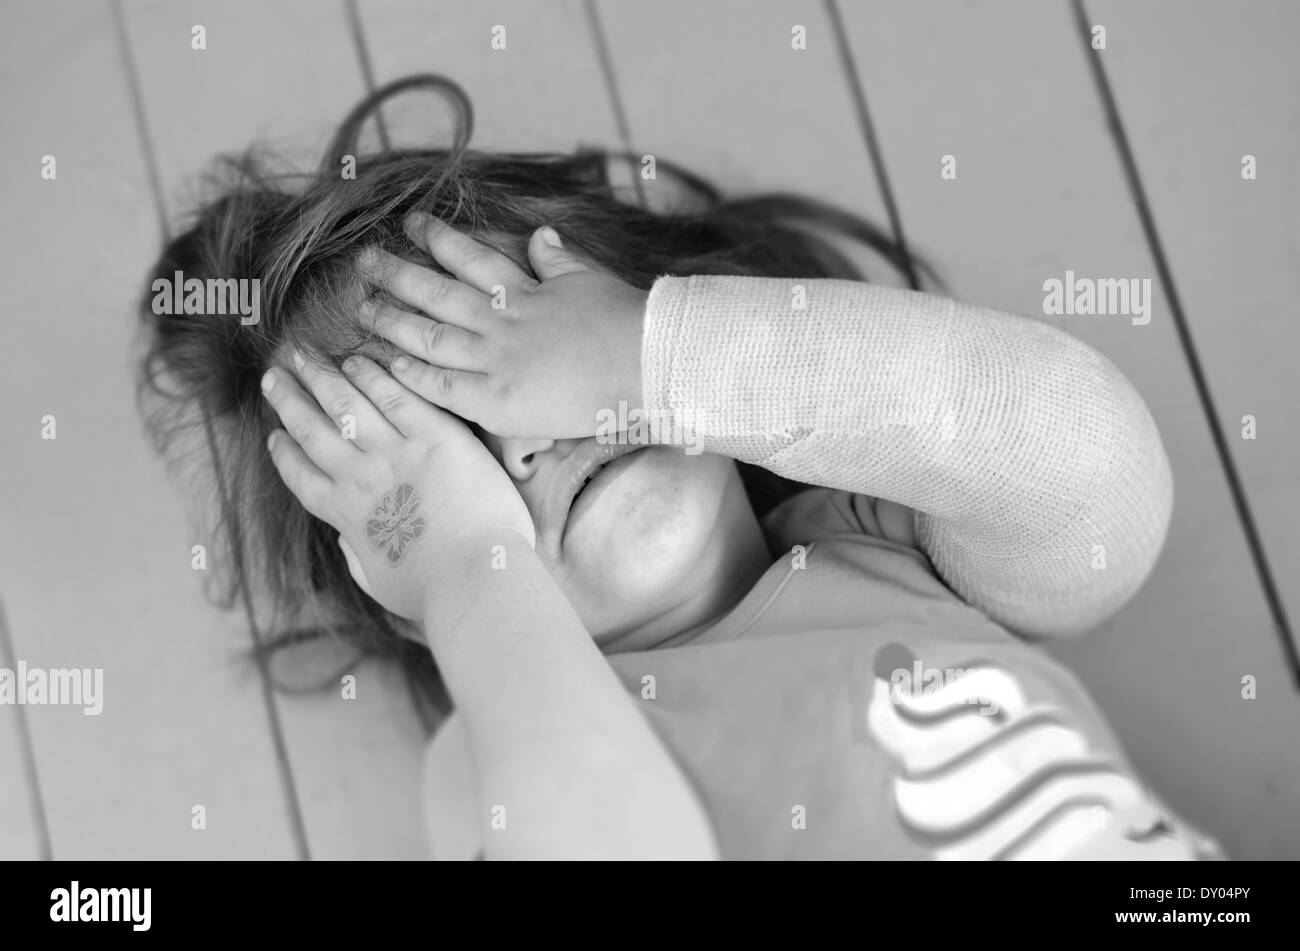 Abused little girl with a broken arm covering here face while crying. Concept photo of child abuse, domestic violent - Stock Image